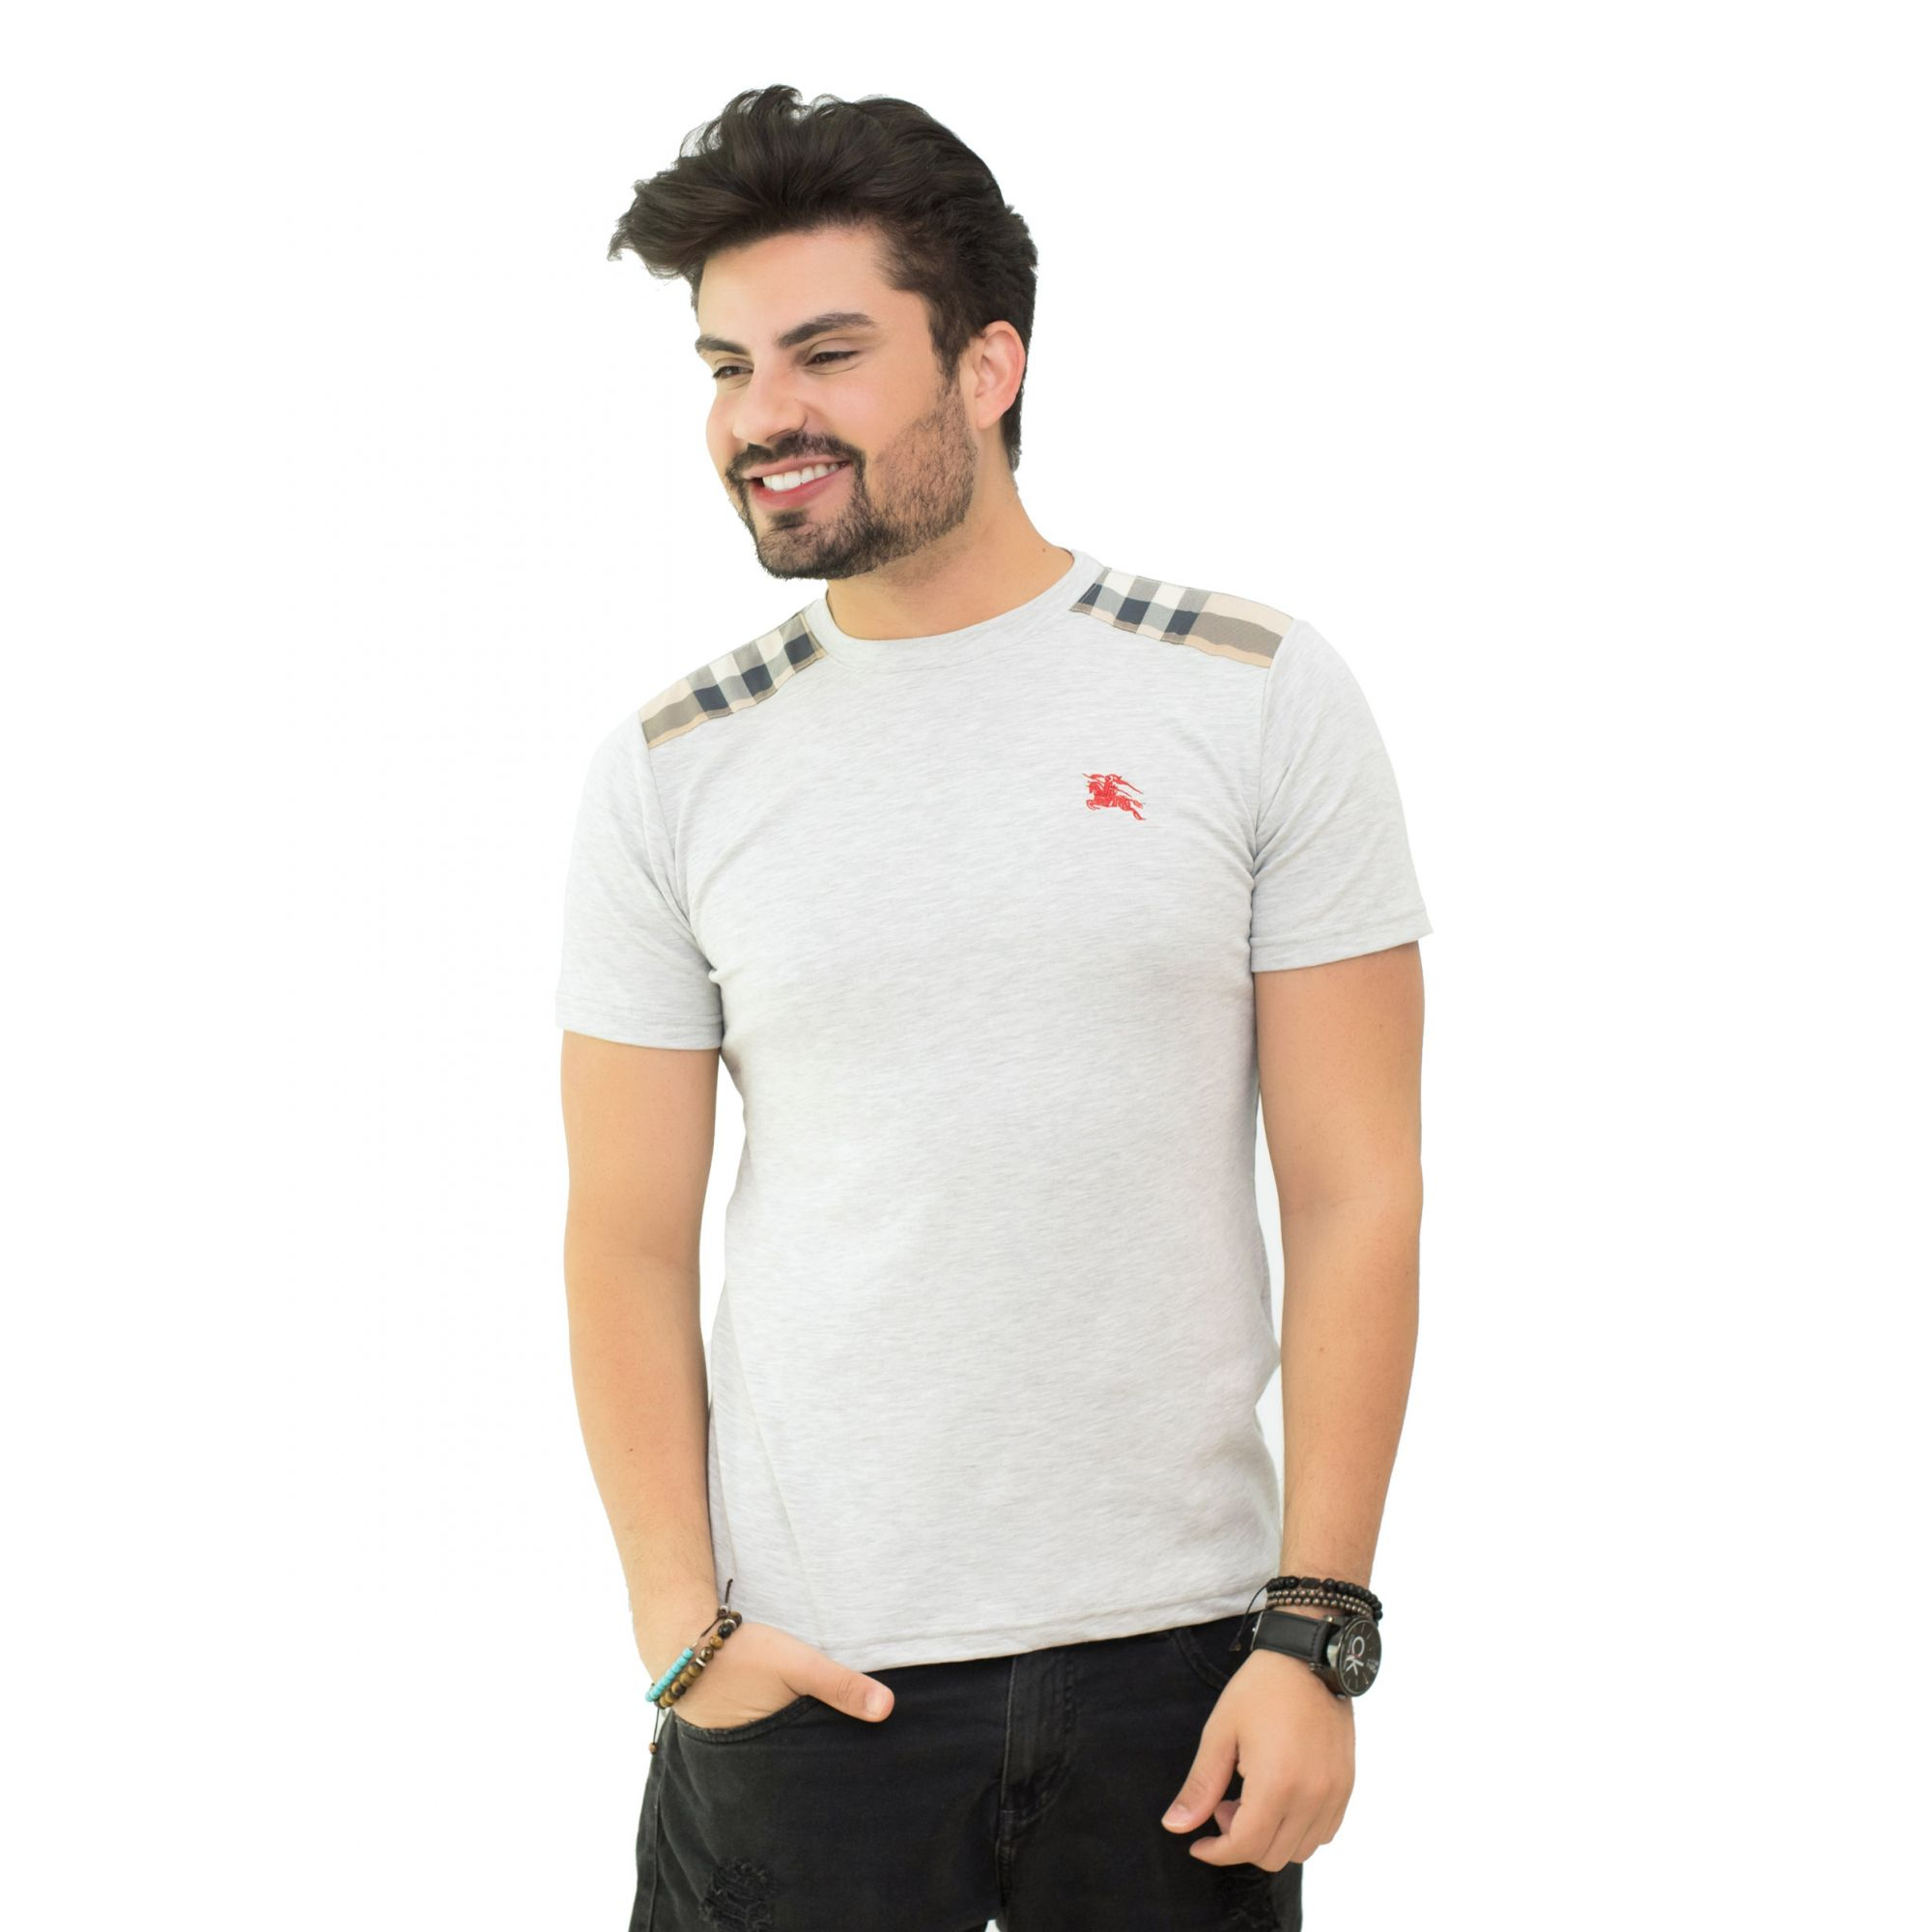 Camiseta Basic Brb Mescla Claro SLIM FIT